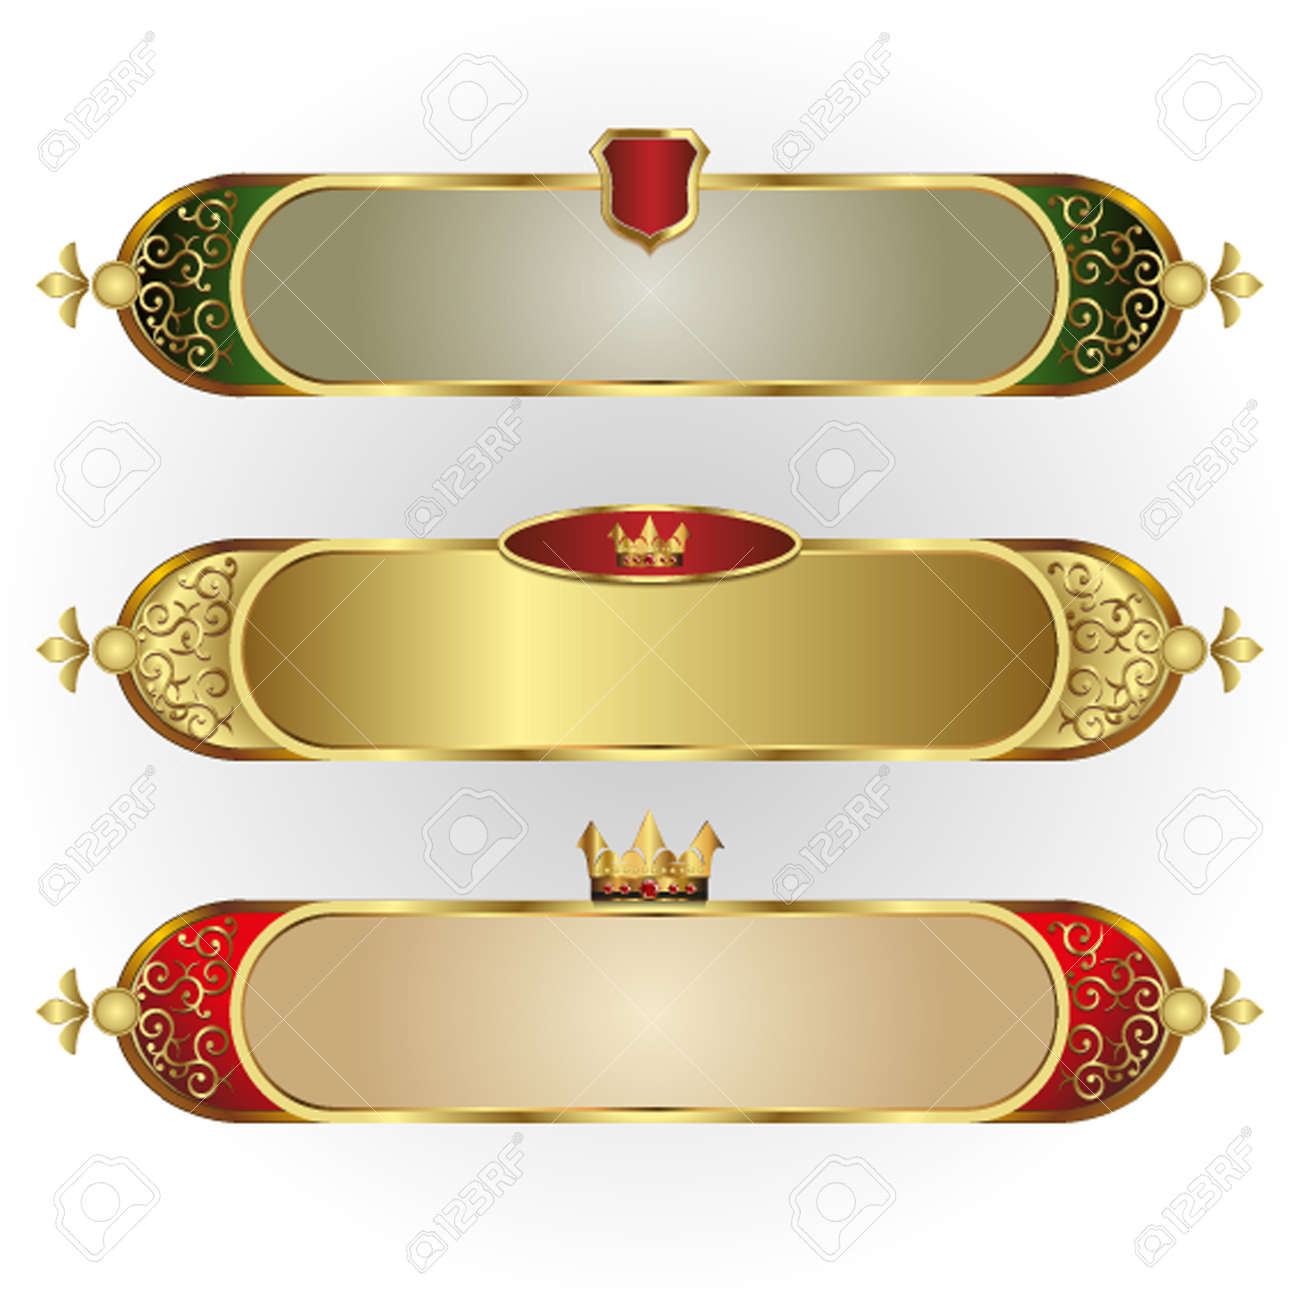 Vector Set Of Frames Oblong Shape With A Gold Rim, Crown, And ...